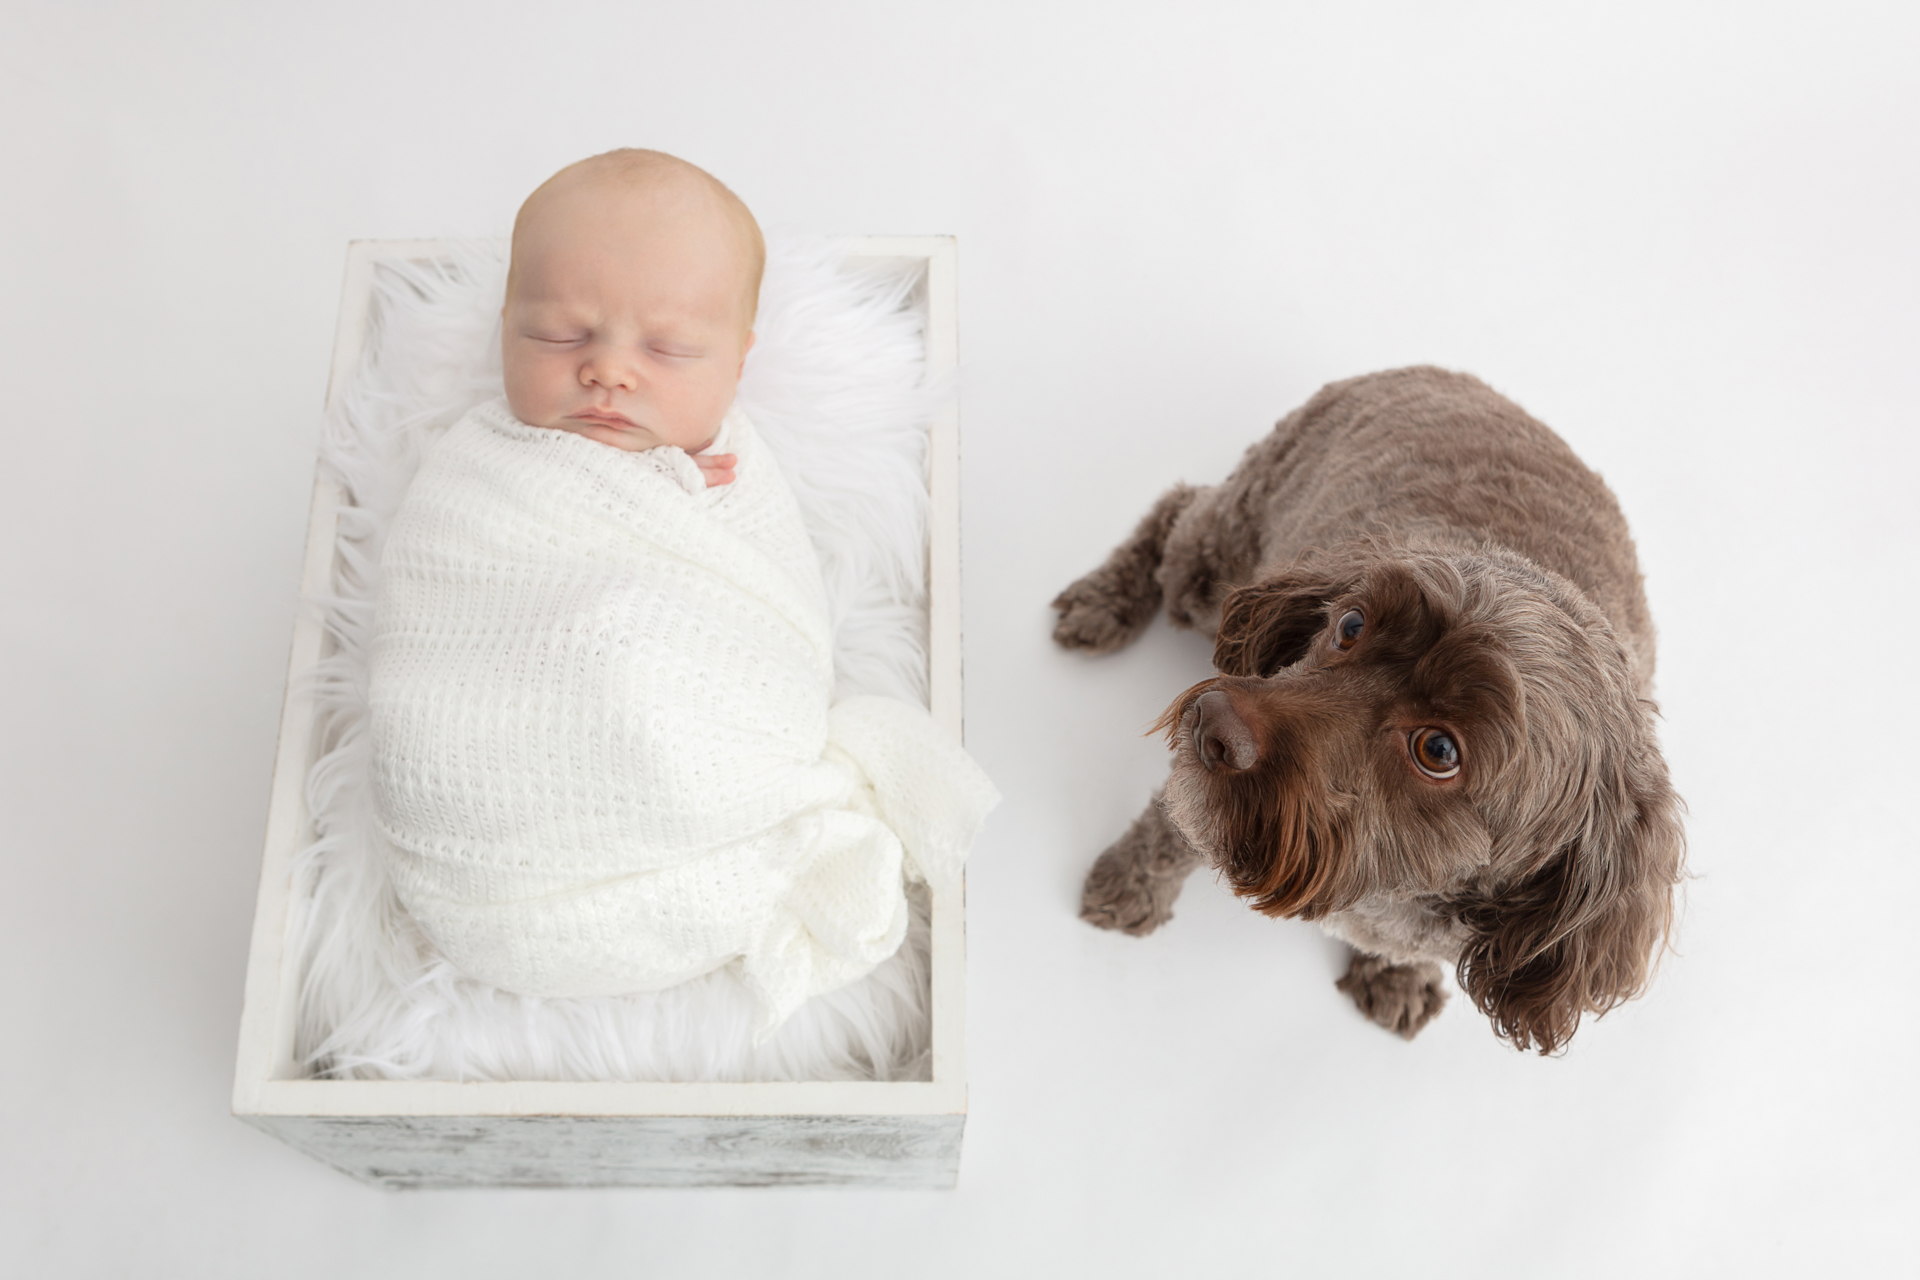 newborn photo with family dog; newborn baby boy wrapped in white; white flokati